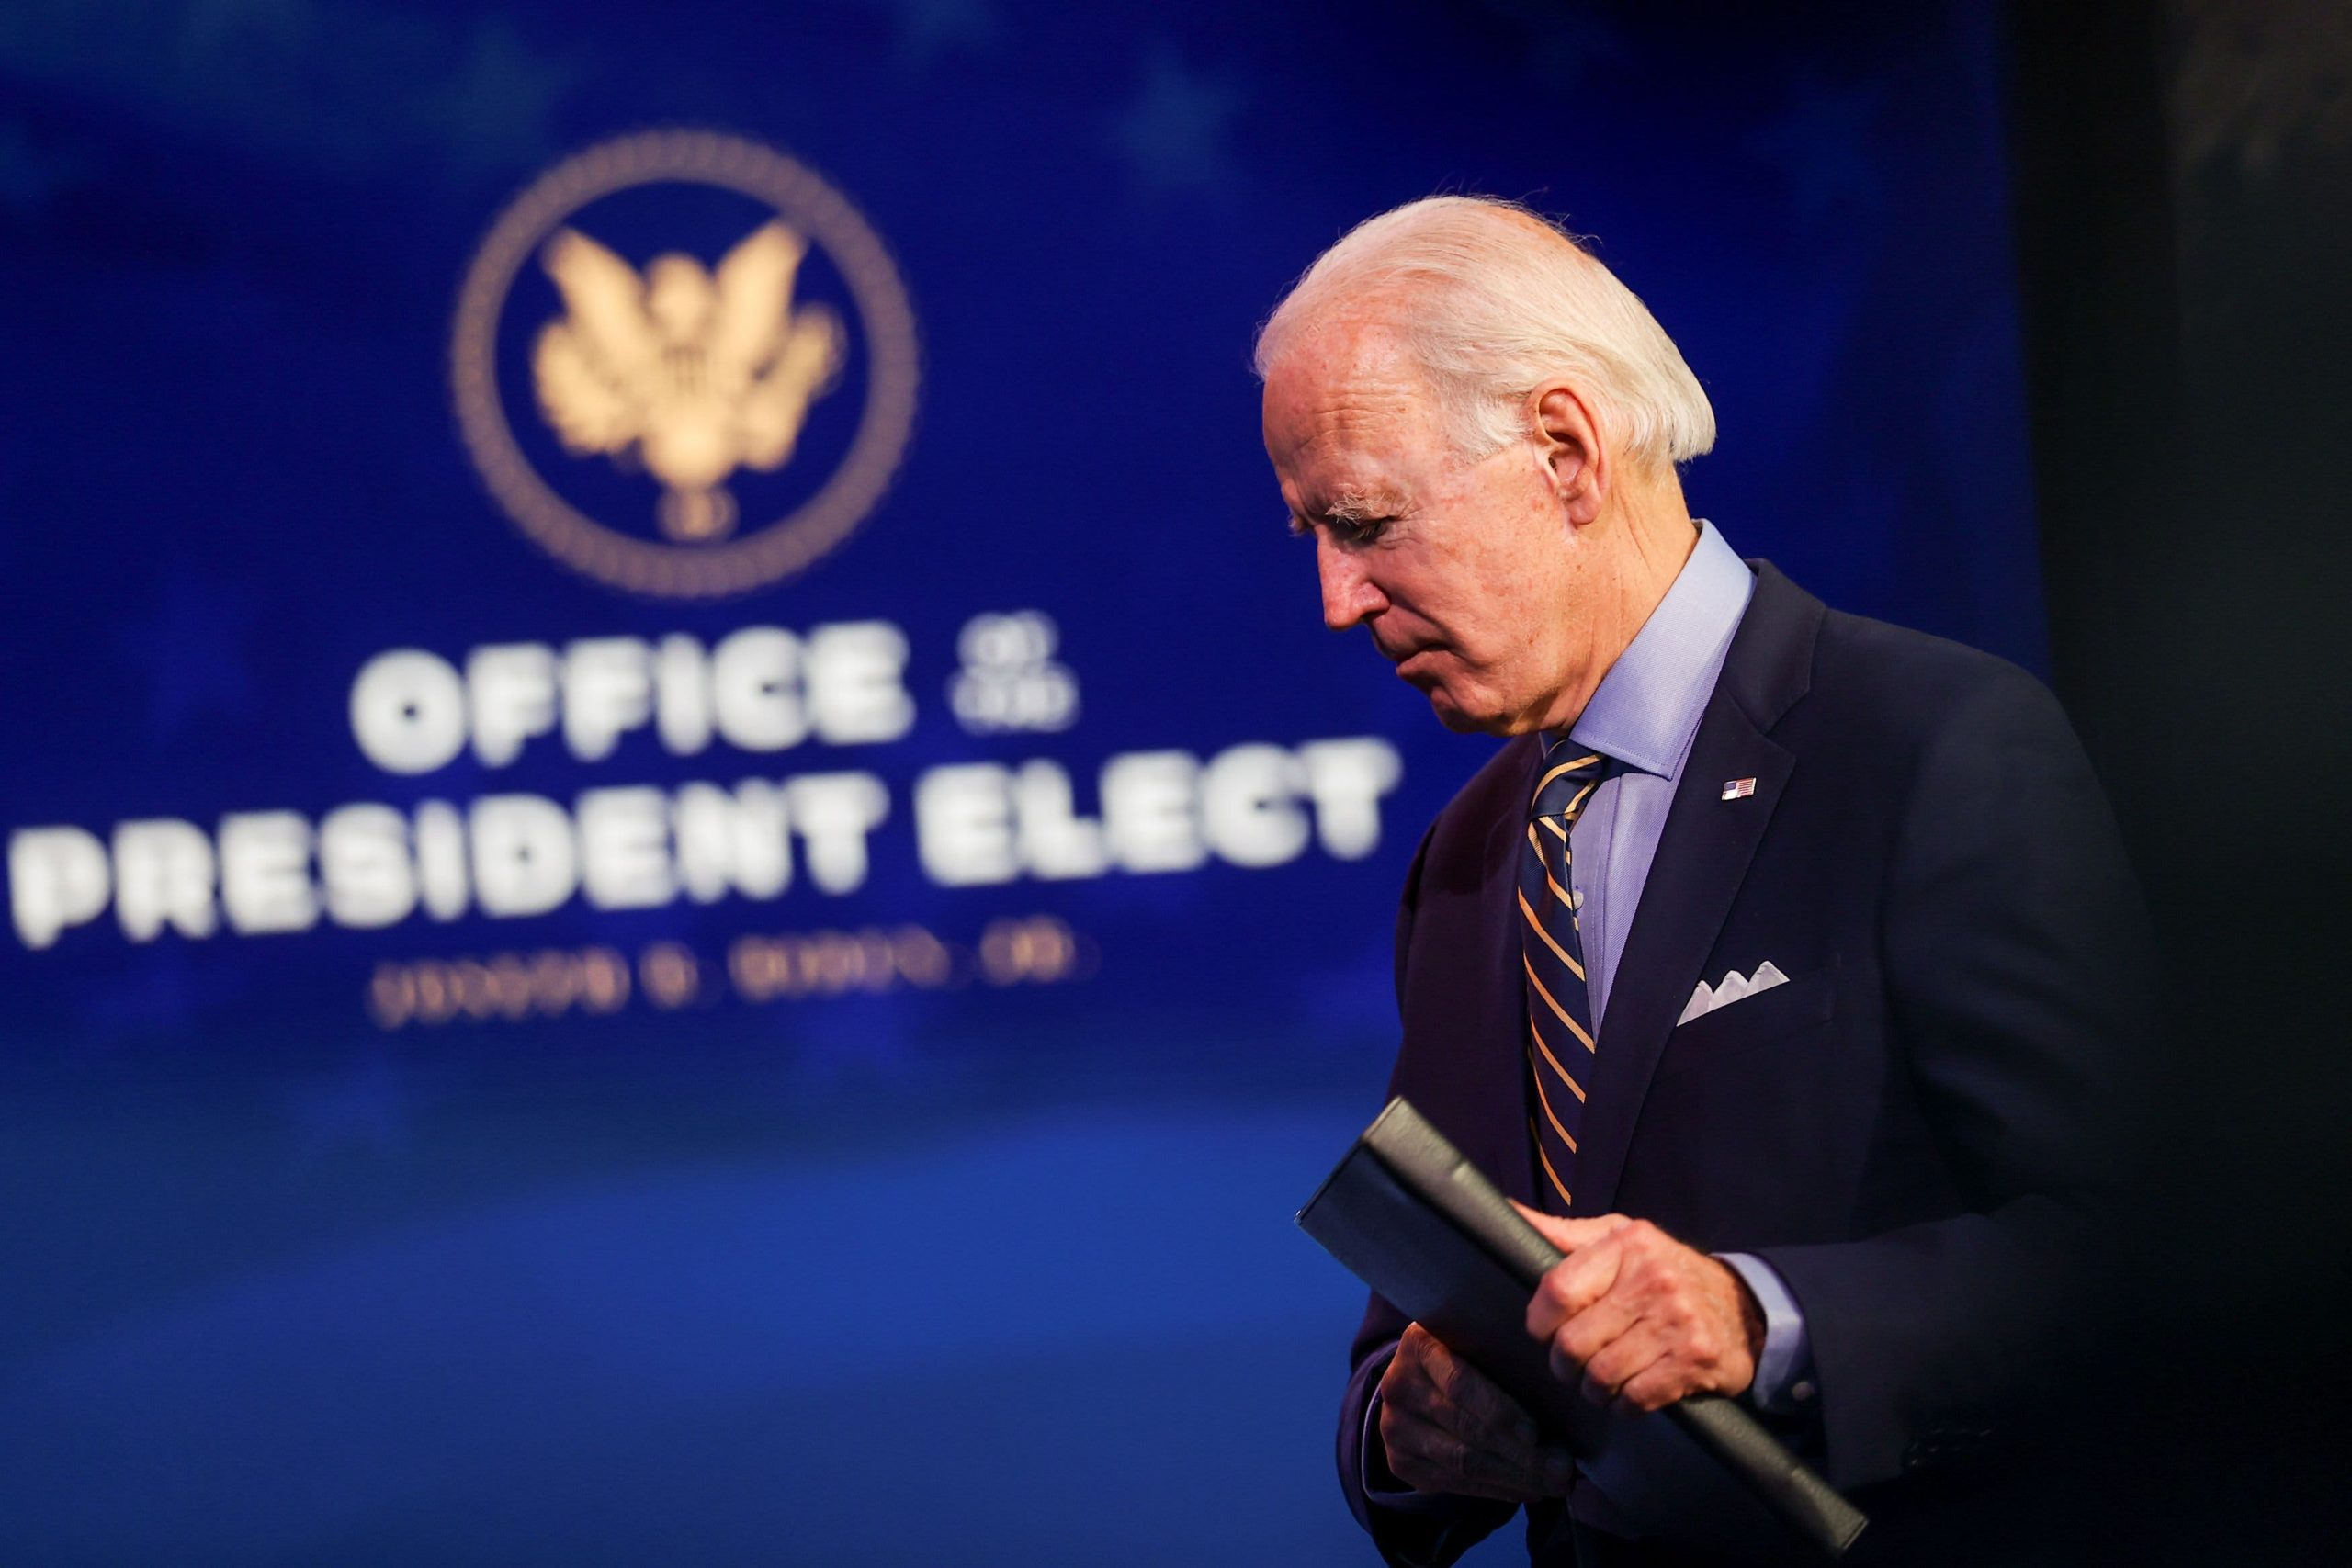 Biden advisor's lobbyist brother has connections but is cautious on conflicts